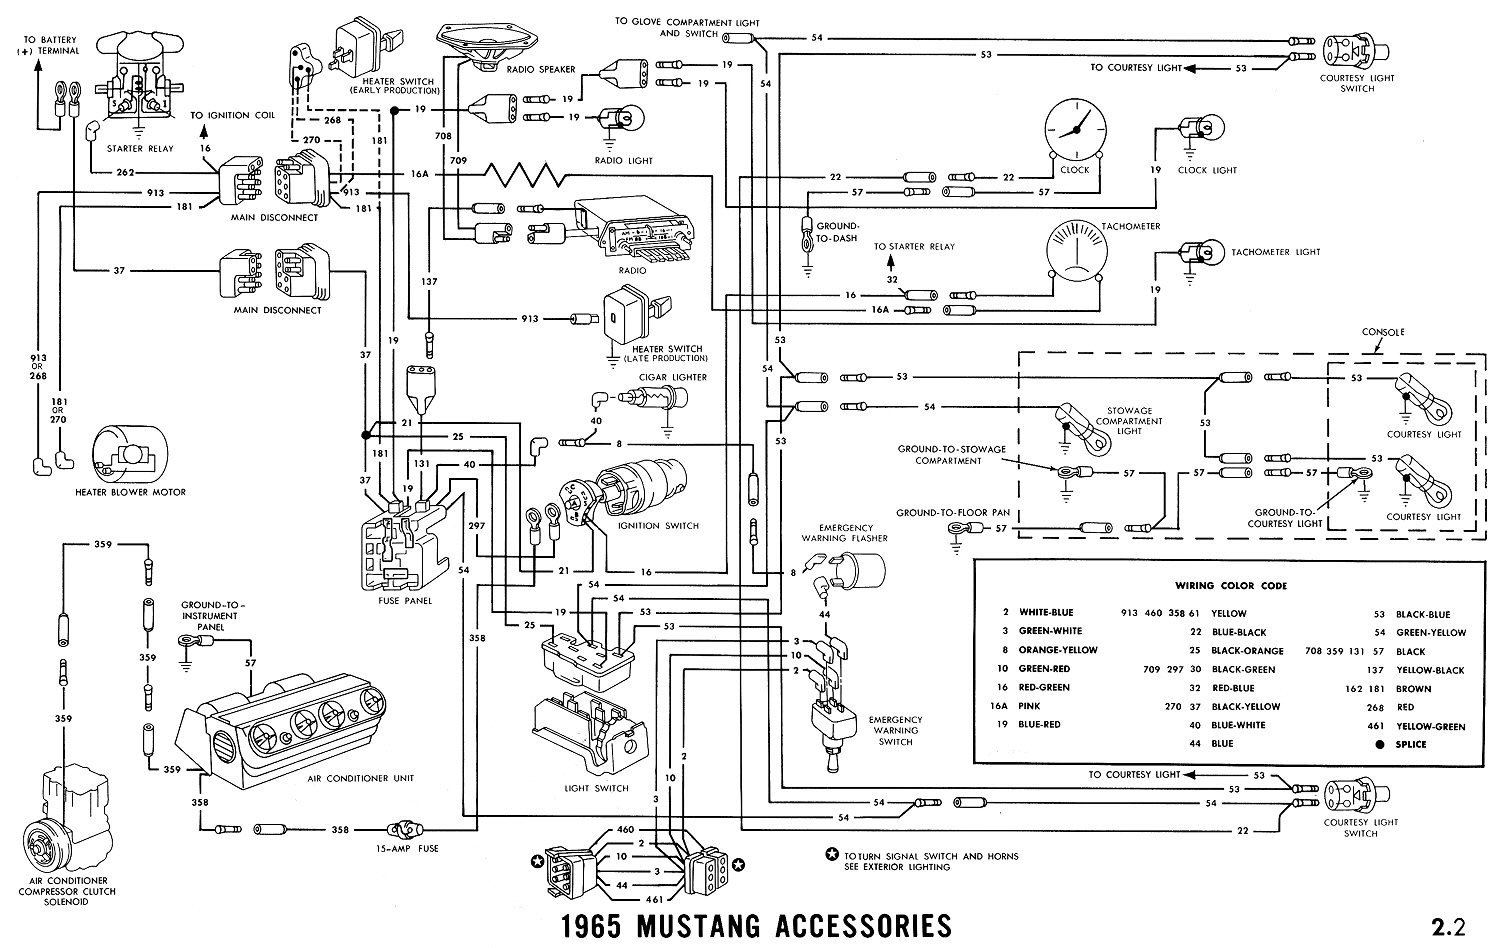 1965i 1965 mustang wiring diagrams average joe restoration 1966 mustang radio wiring diagram at bakdesigns.co